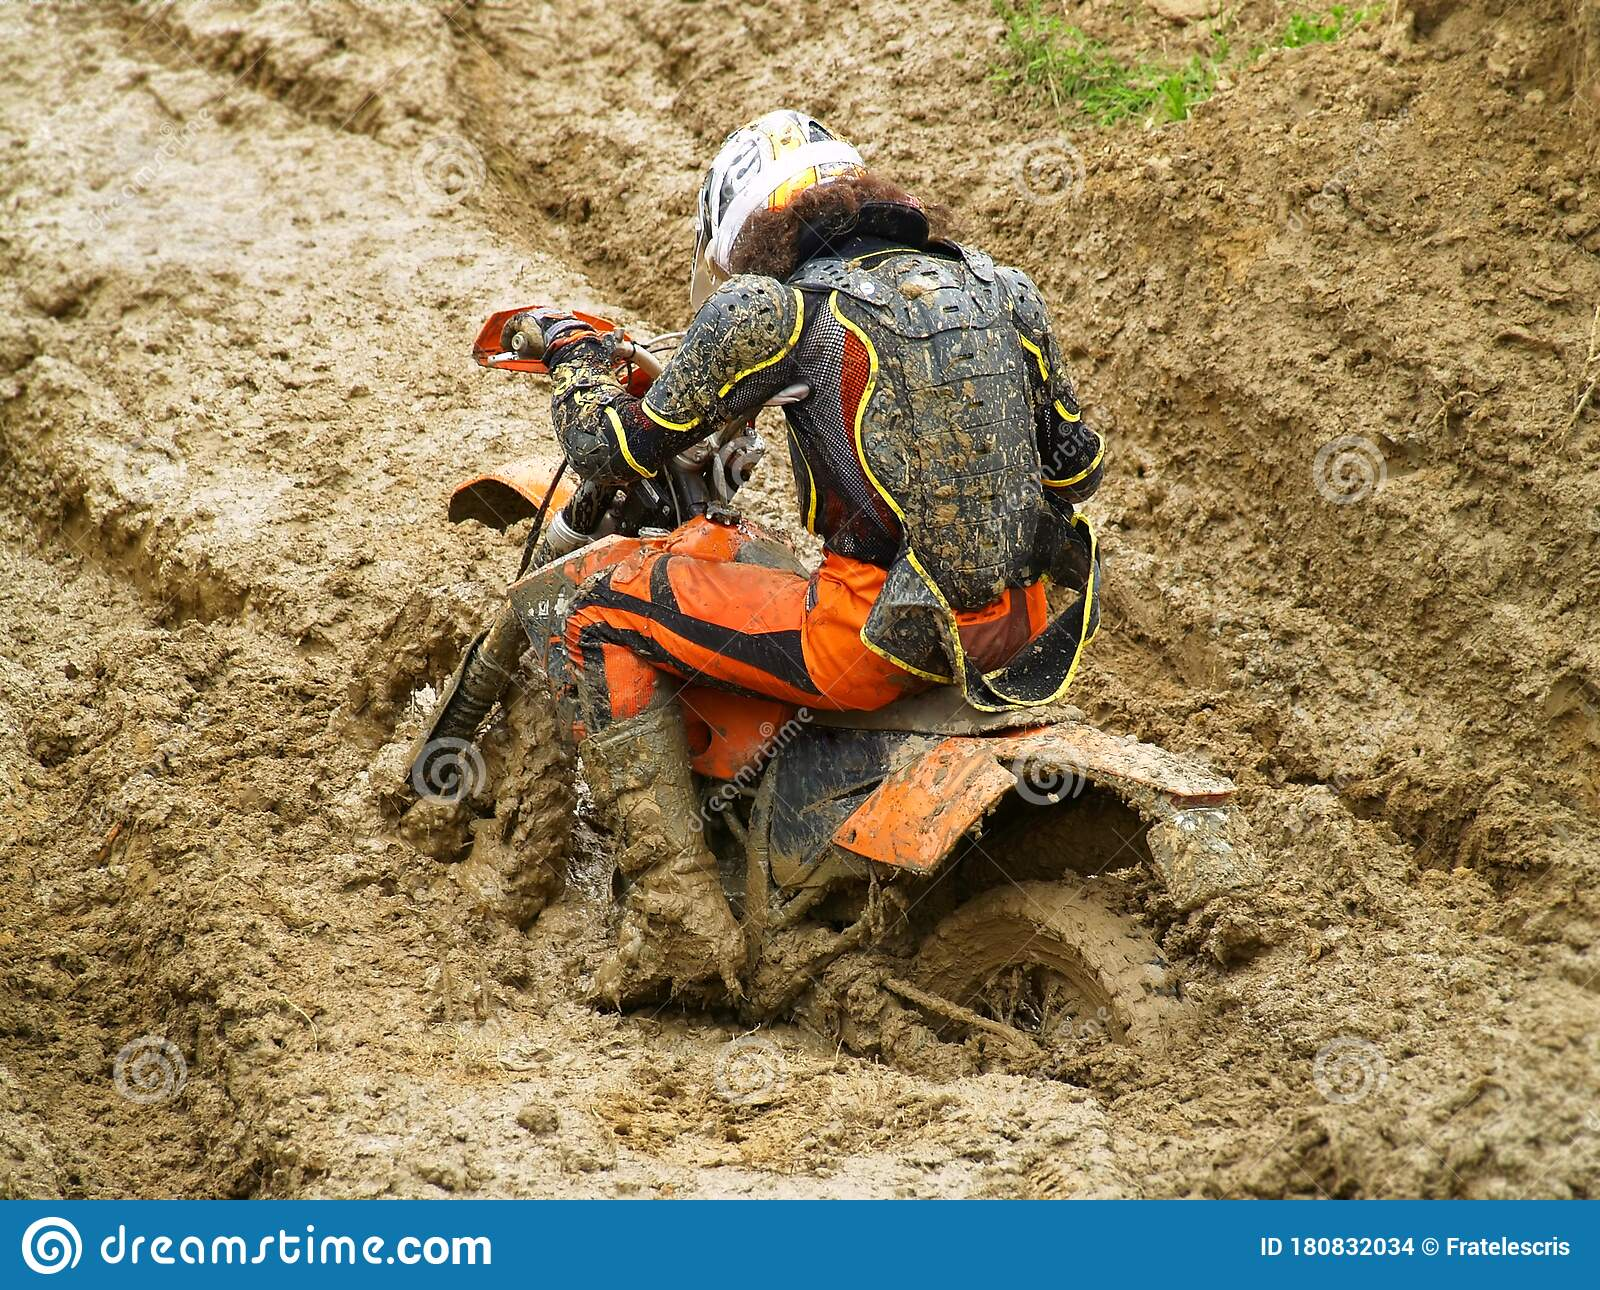 1 646 Dirtbike Mud Photos Free Royalty Free Stock Photos From Dreamstime